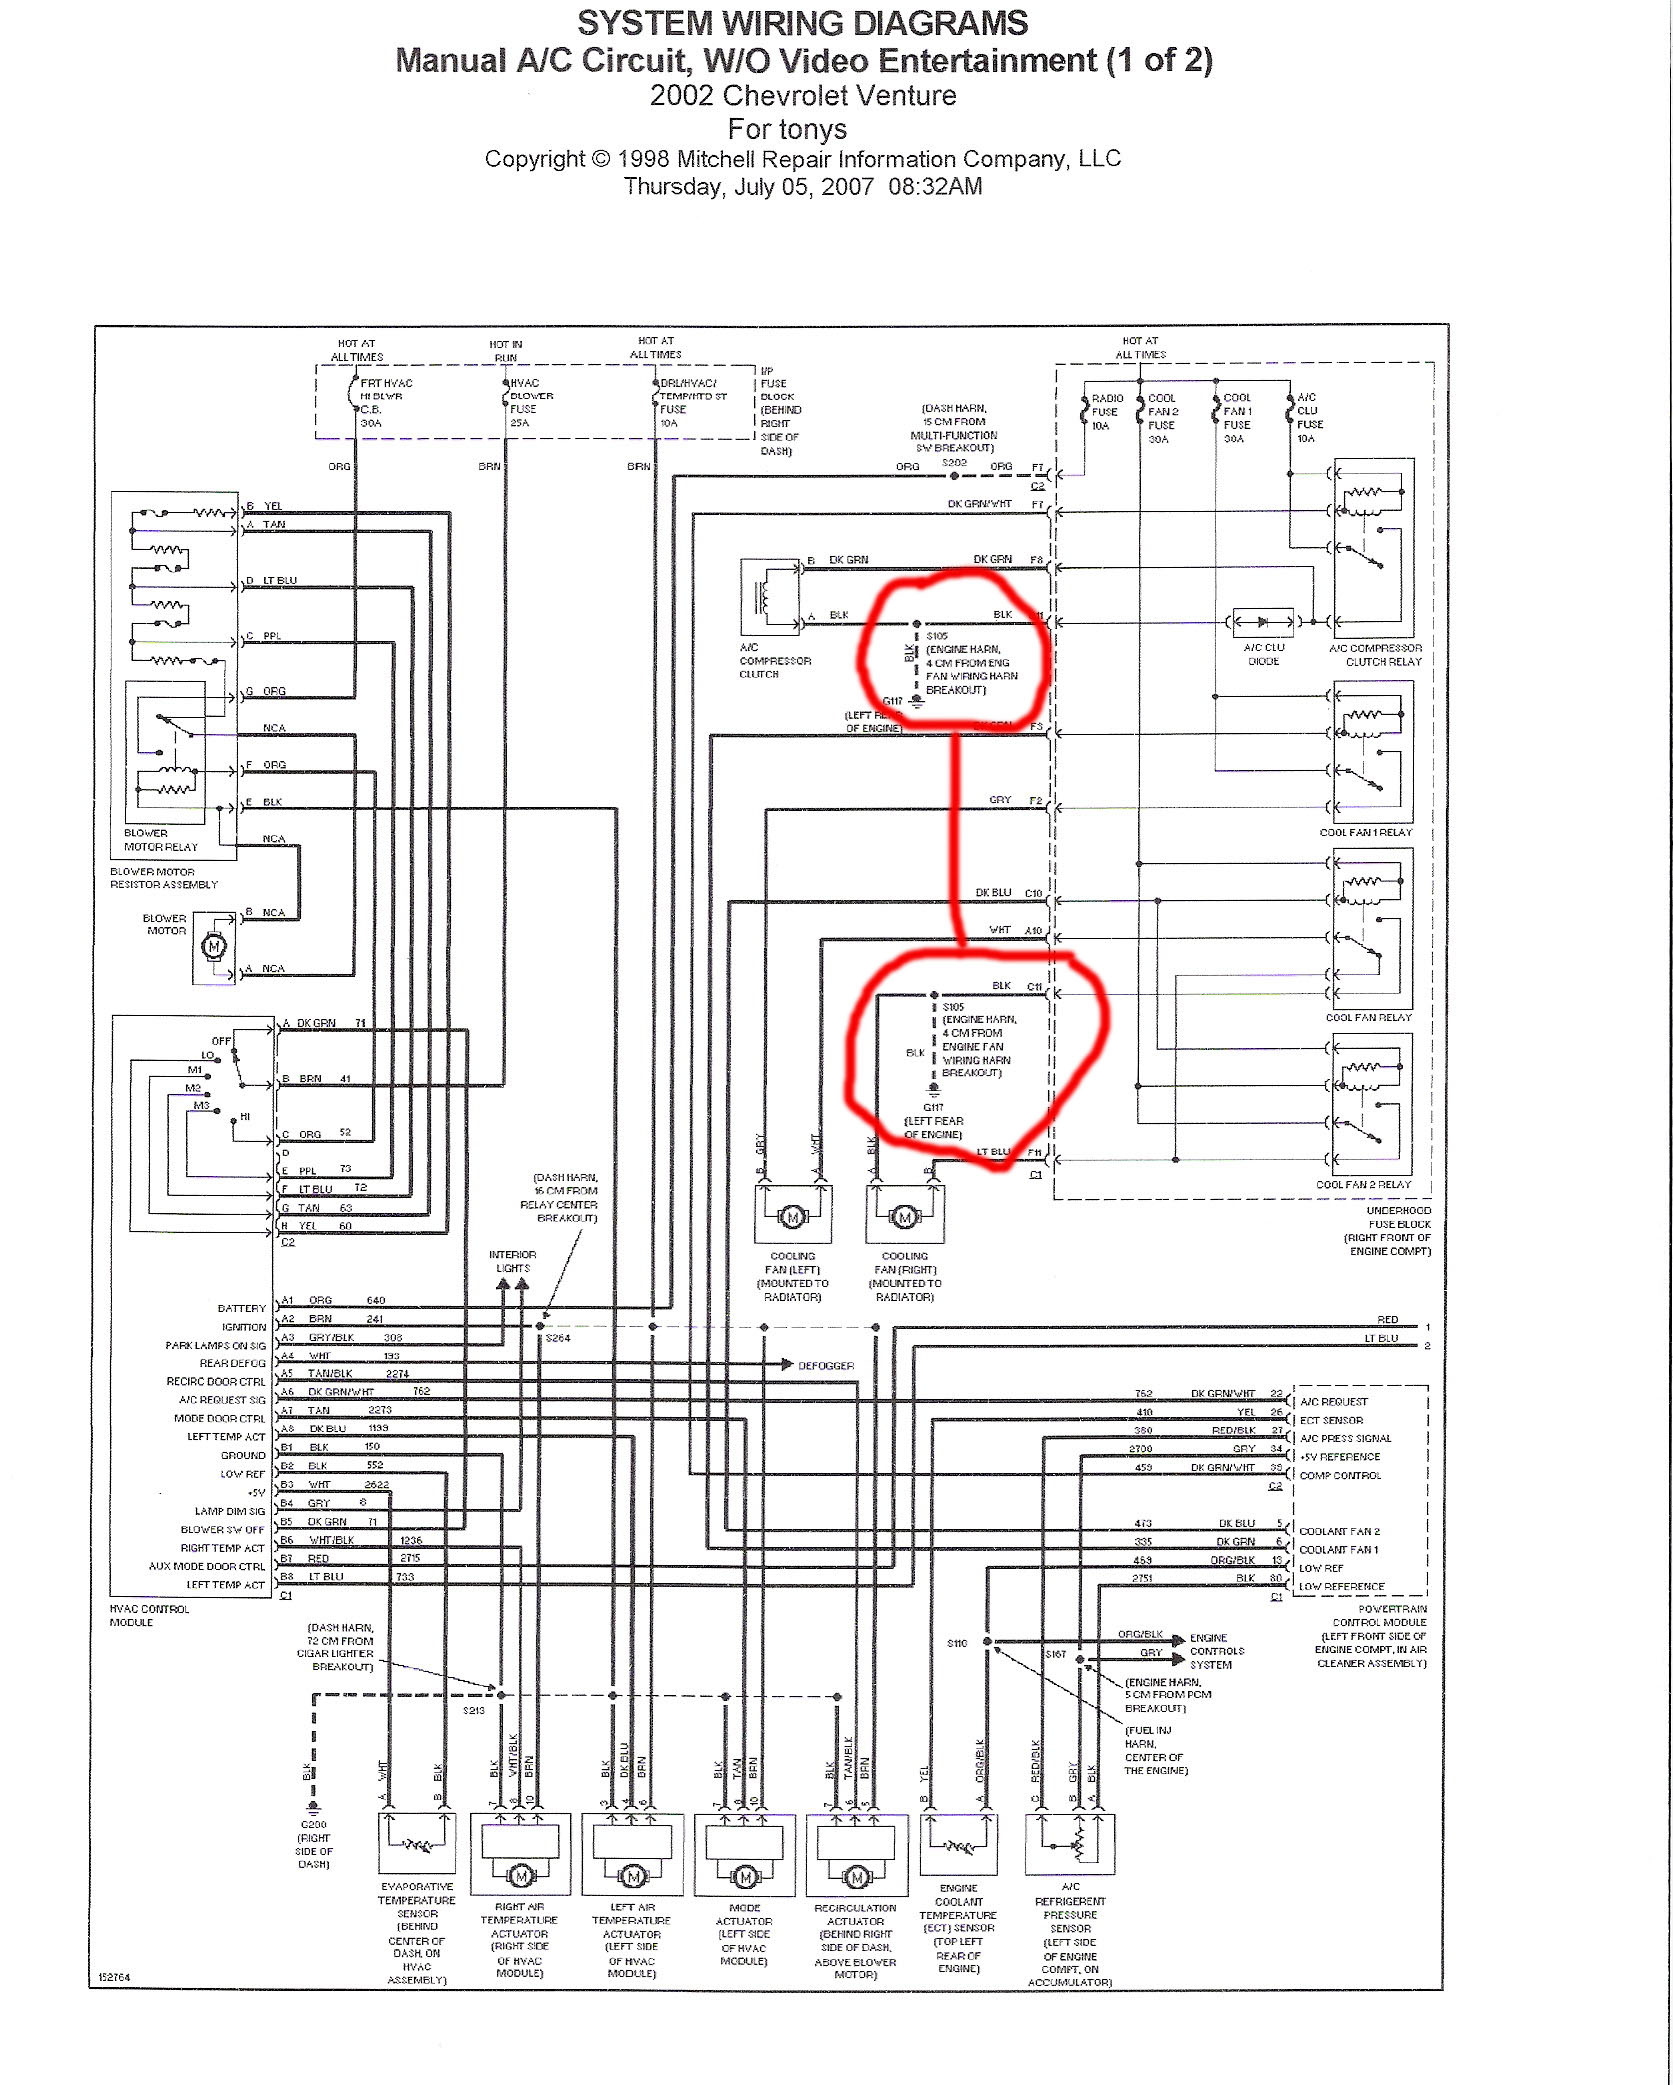 03 Chevy Venture Wiring Diagram Html